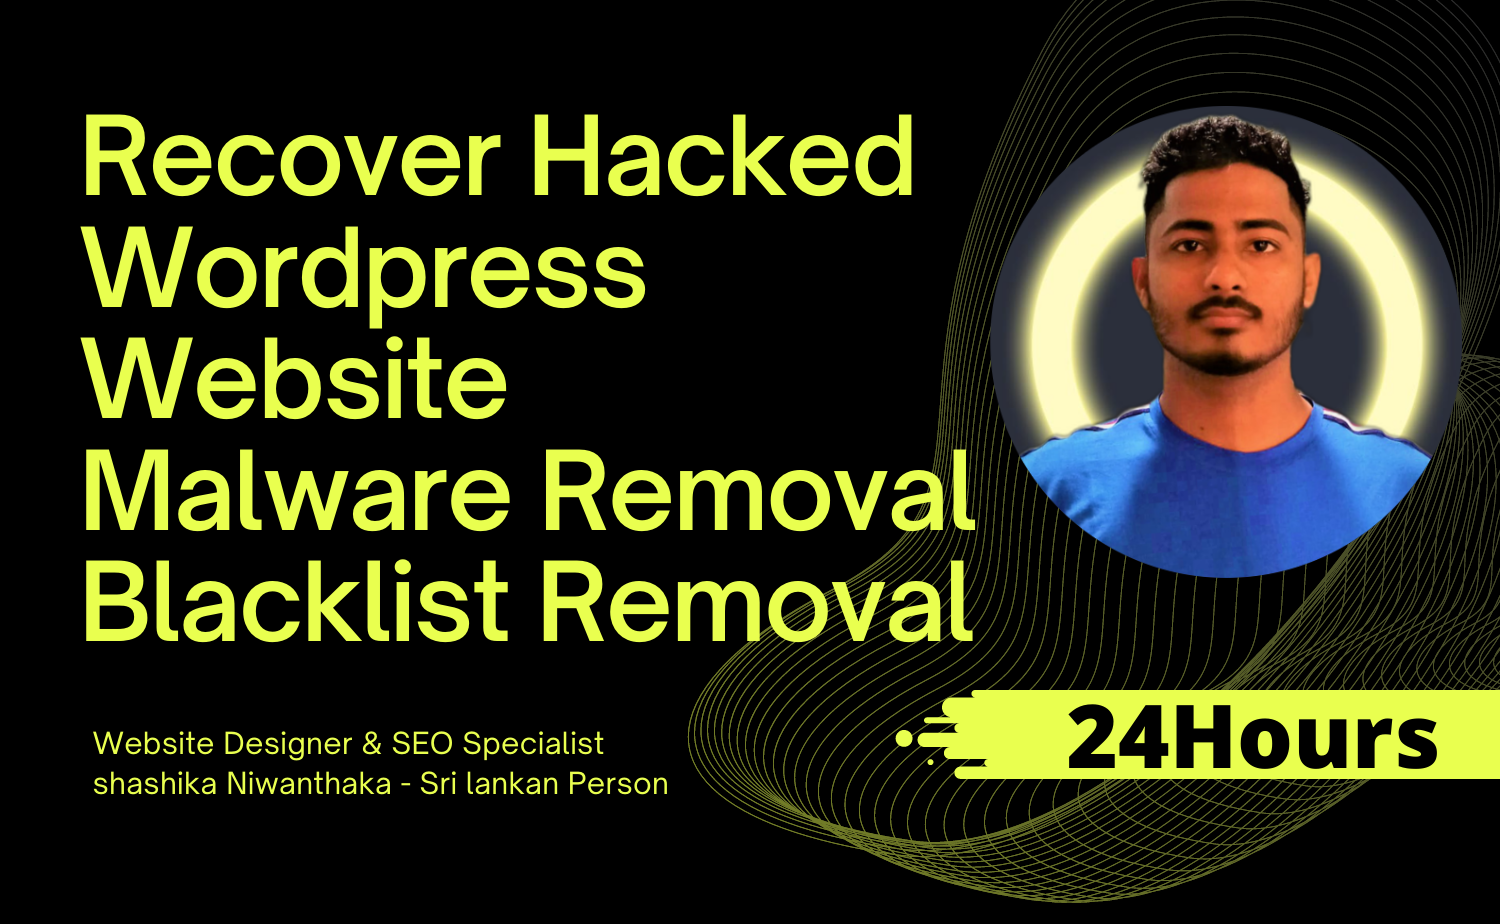 Recover hacked wordpress website security up and remove malware